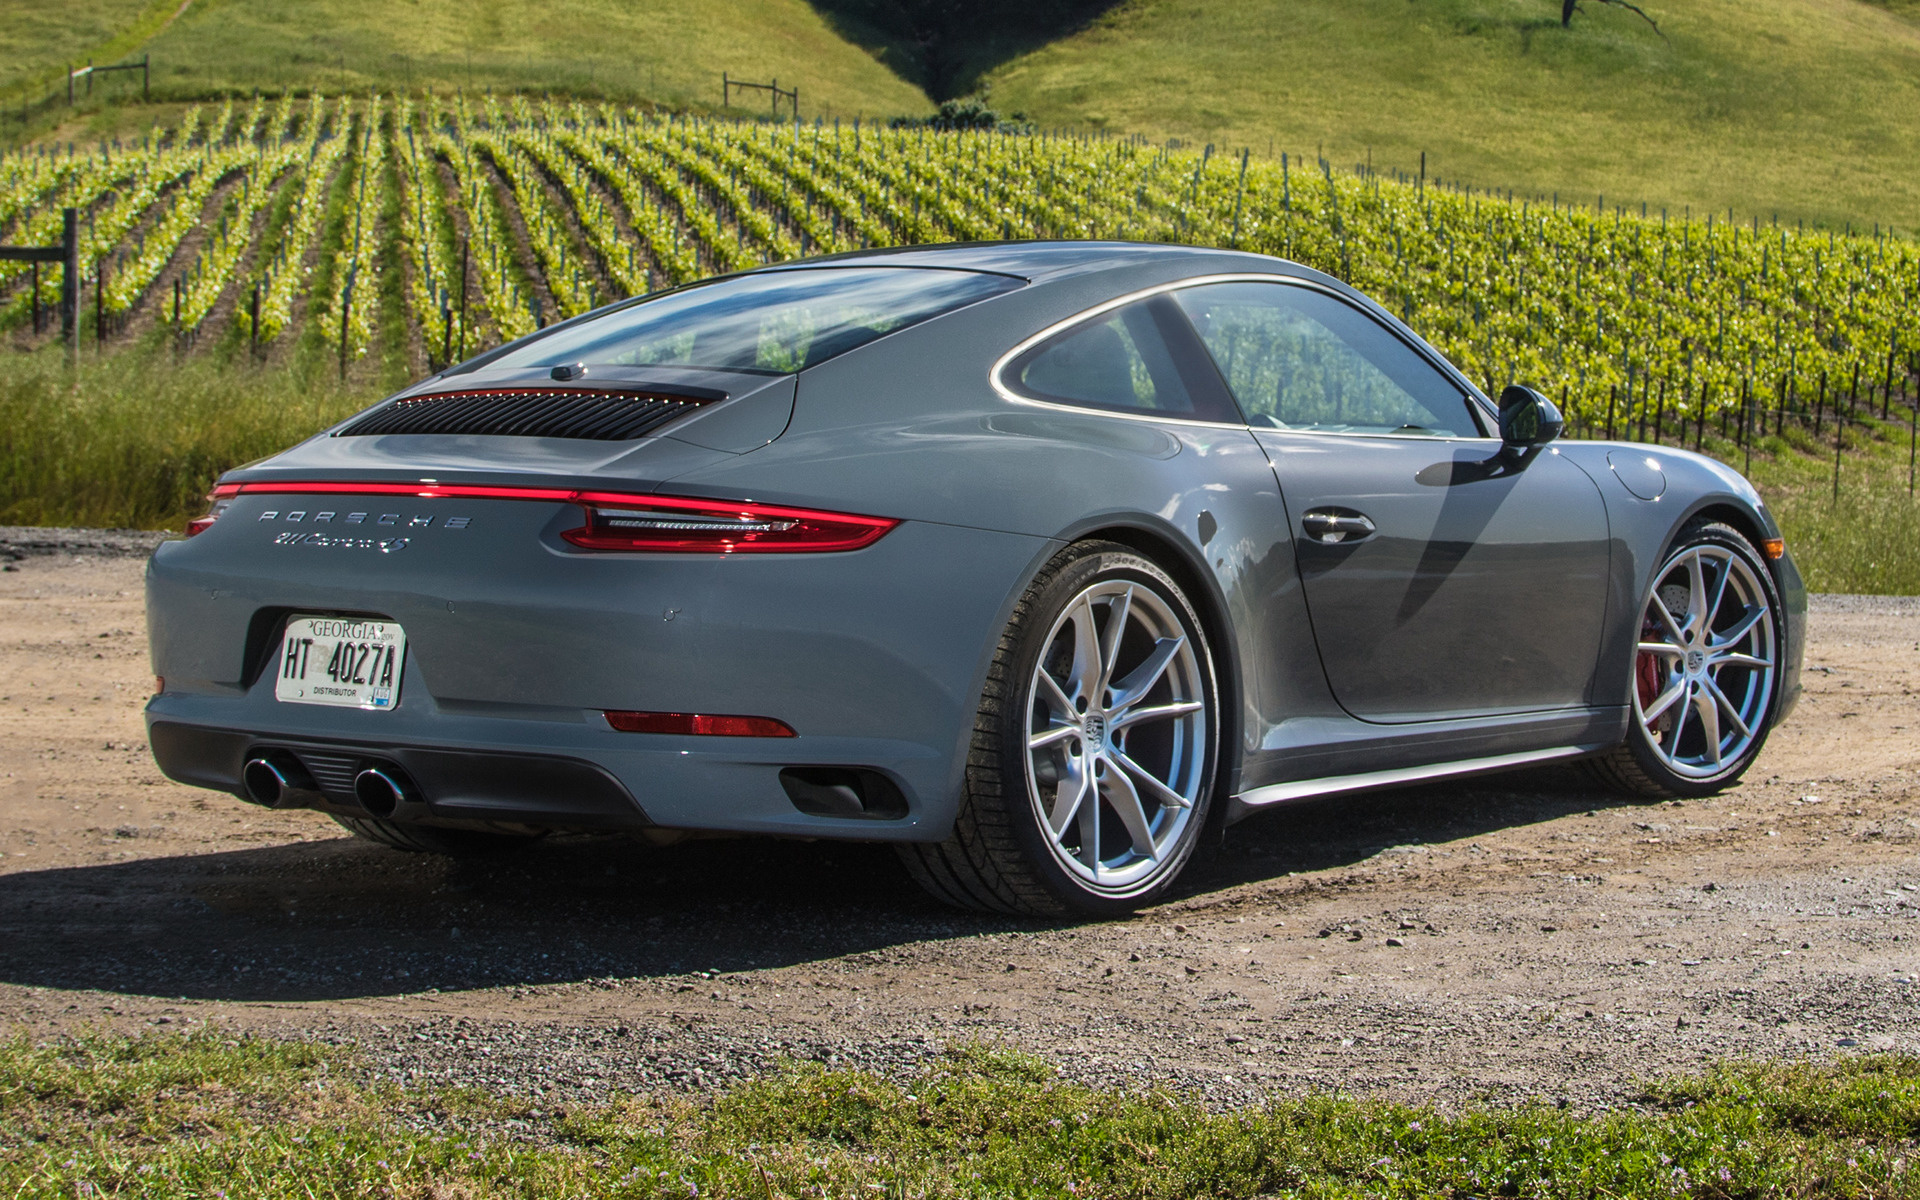 911 Carrera Gts >> 2017 Porsche 911 Carrera S (US) - Wallpapers and HD Images ...